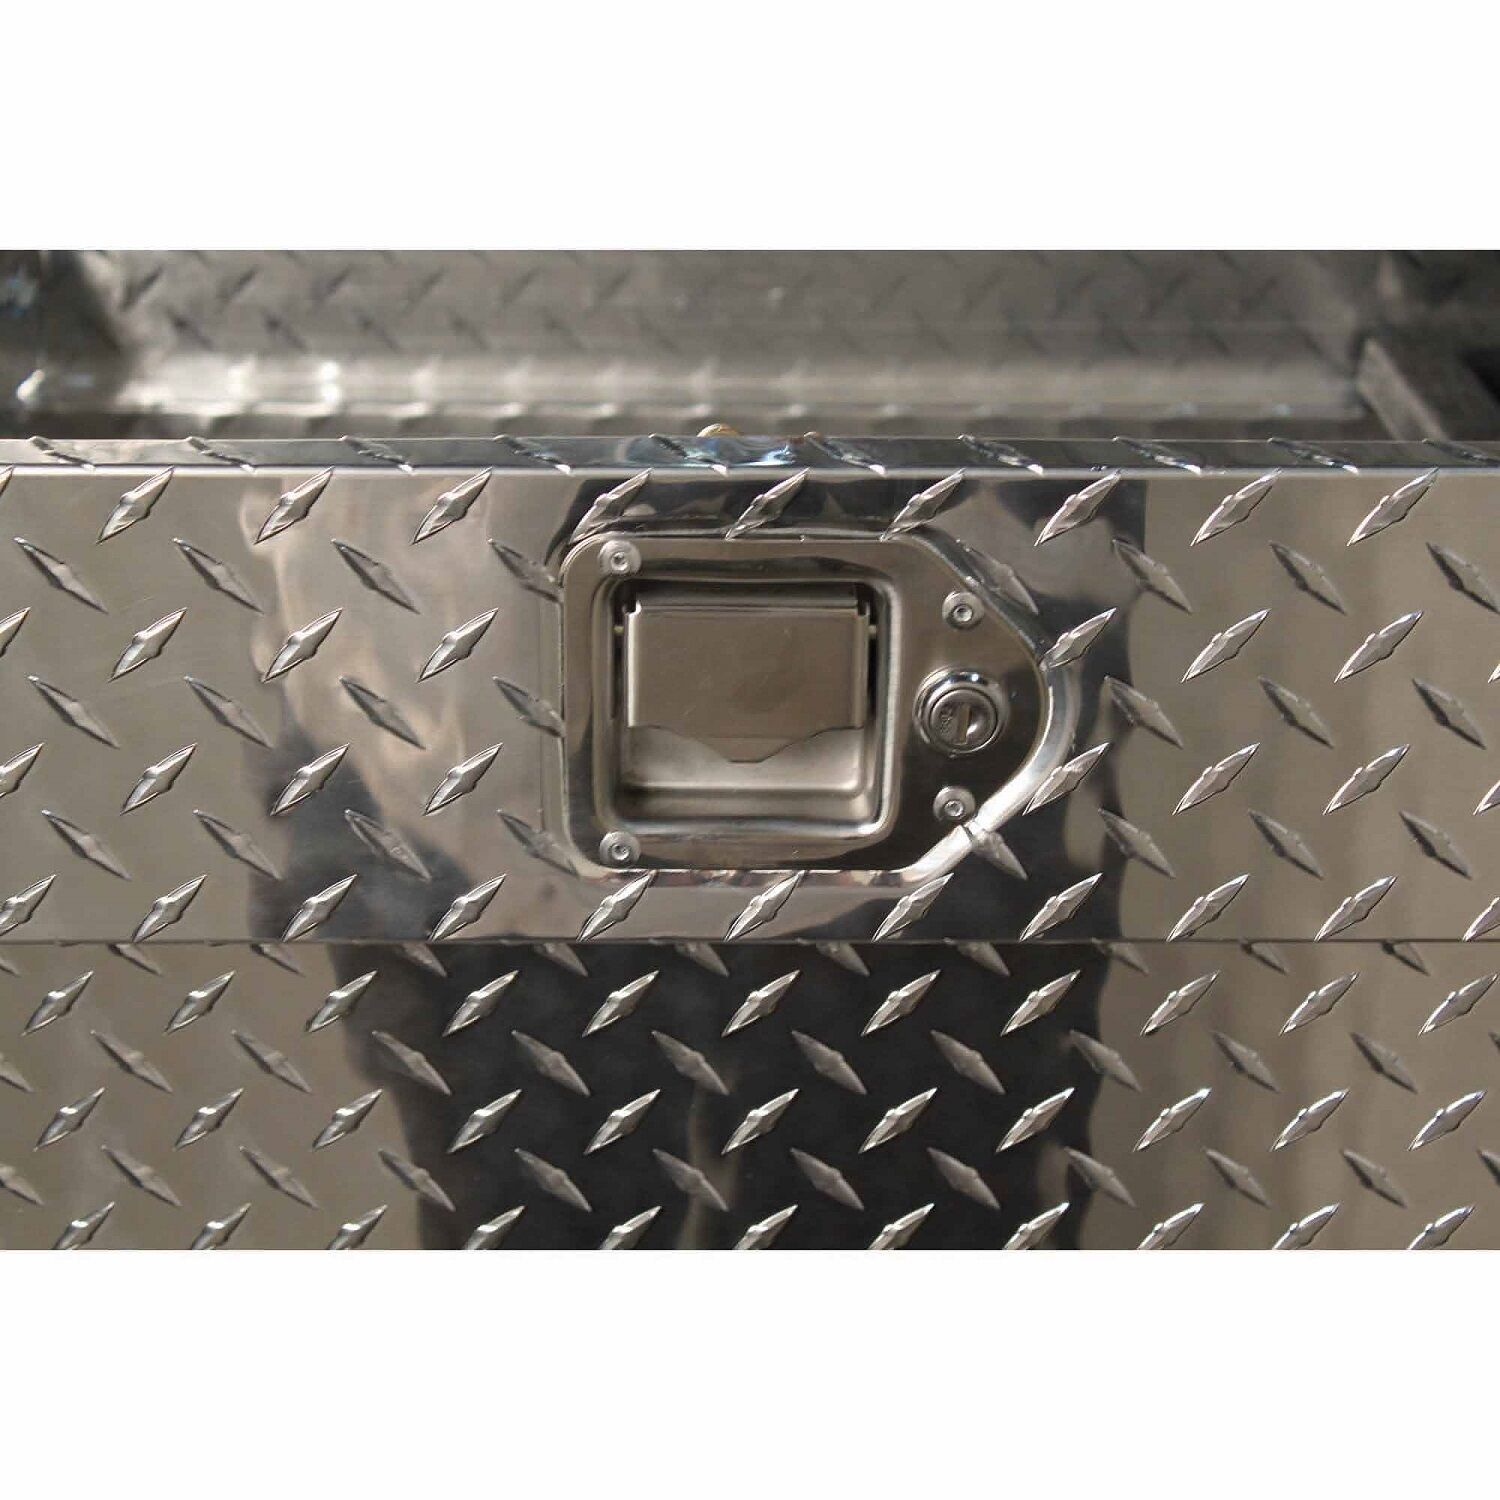 Chevrolet And Toyota Top 10 Cars Used Cars Under 200: Truck Tool Box Diamond Plate 48 Inch Organizer Aluminum